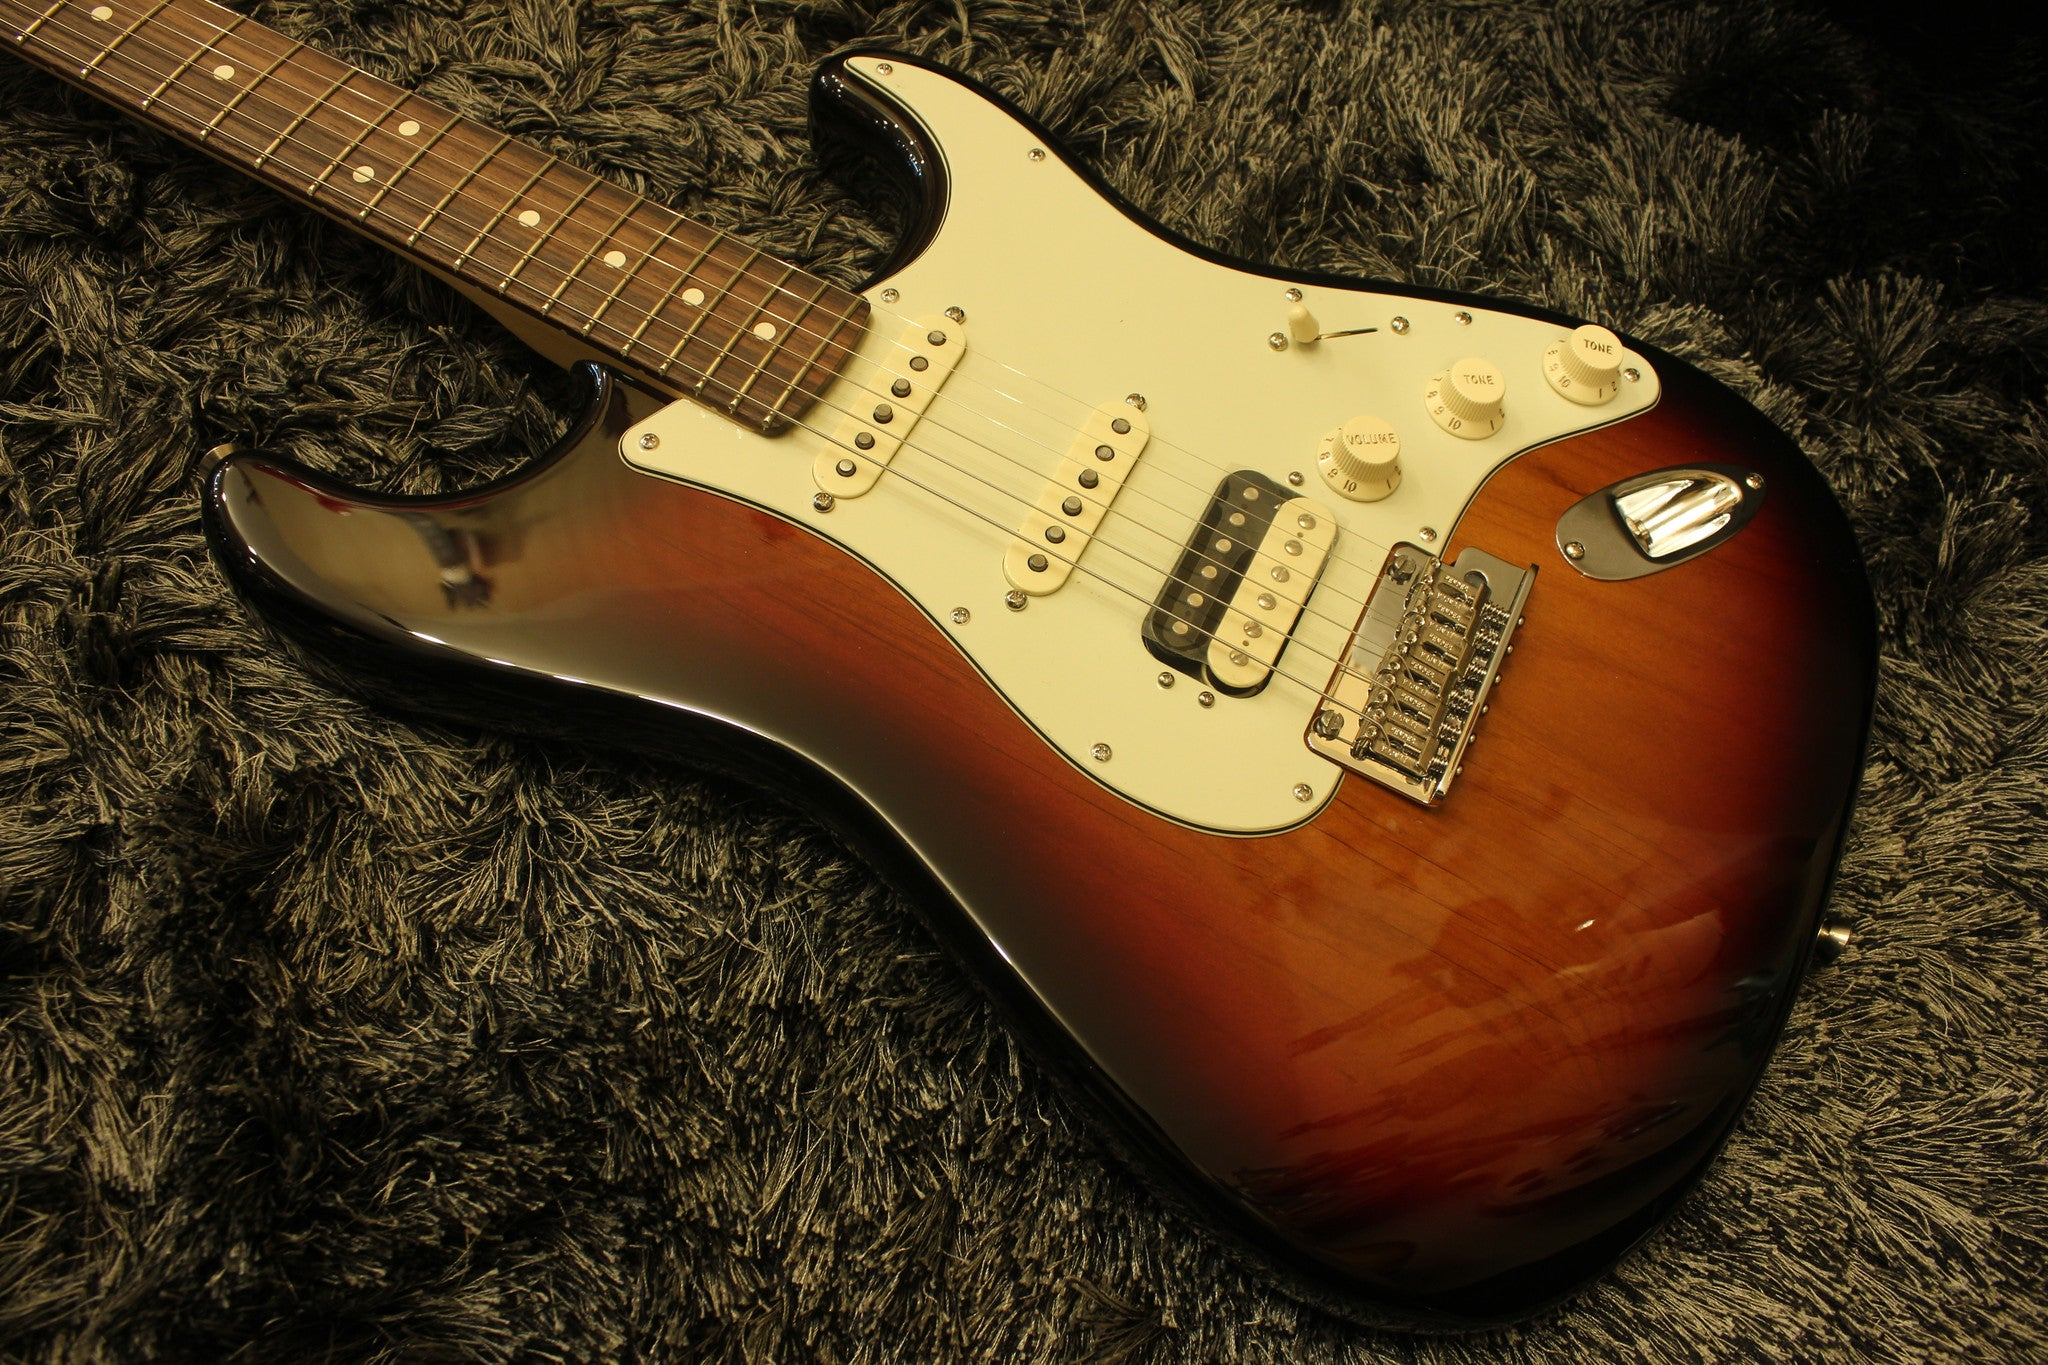 Fender American Professional HSS Shawbucker Stratocaster - 3-color Sunburst with Rosewood Fingerboard 1922